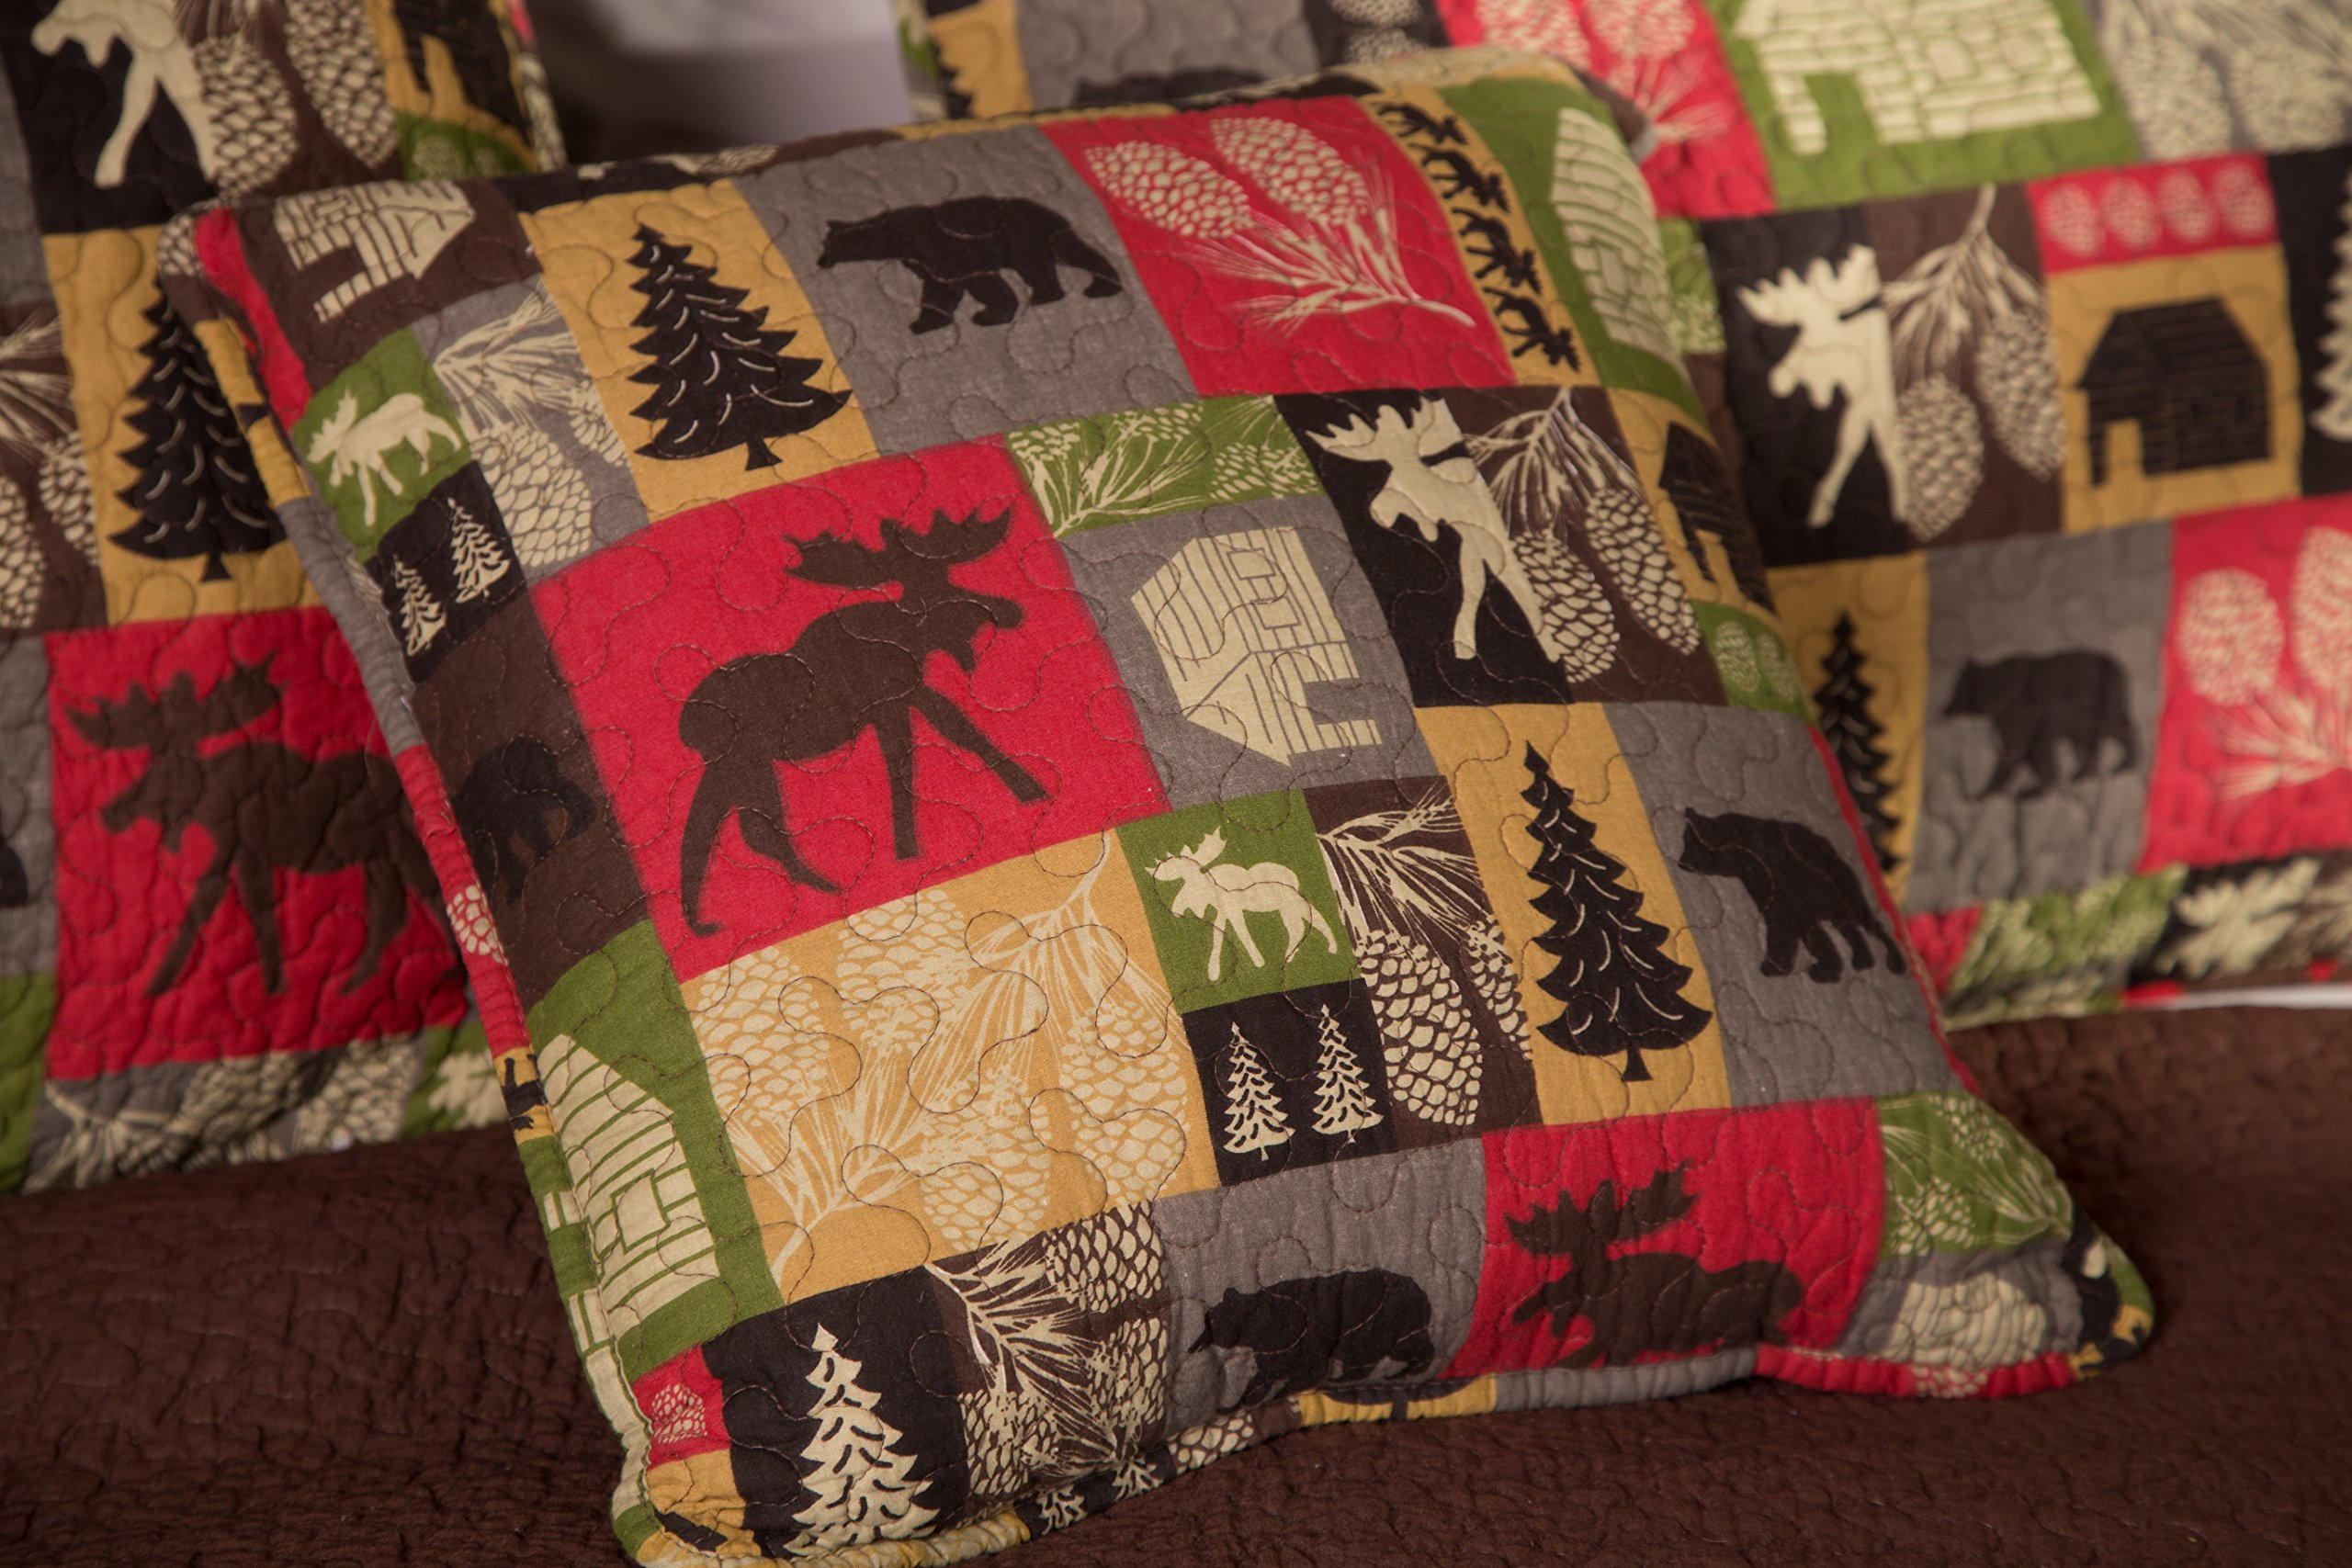 Carstens Cabin in The Woods 5 Piece Cotton Printed Quilt Bedding Set, Queen by Carstens (Image #5)